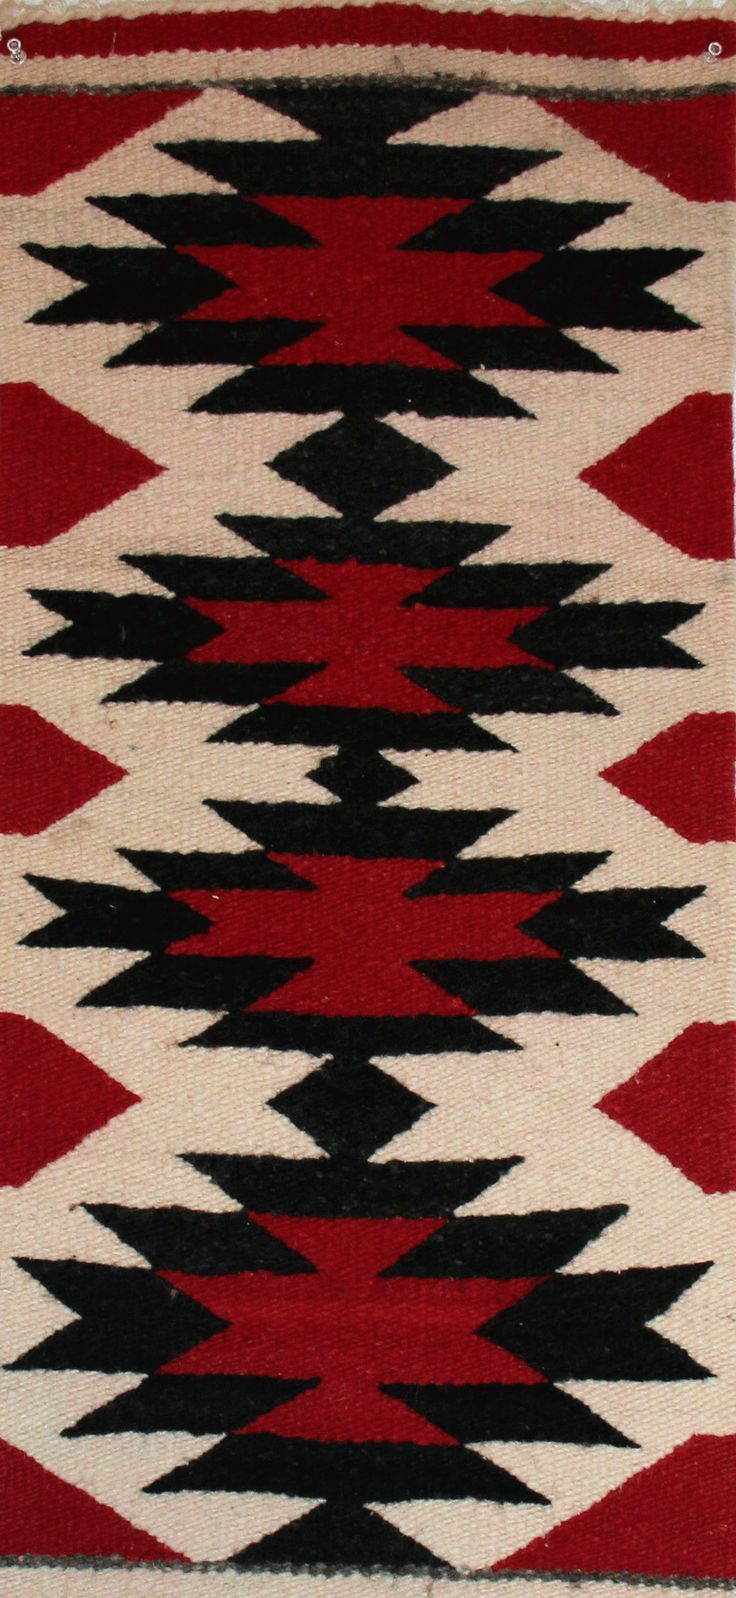 DESCRIPTION Navajo Rugs Serve Not Only As Floor Rugs But Also As Furniture  Covers And Wall